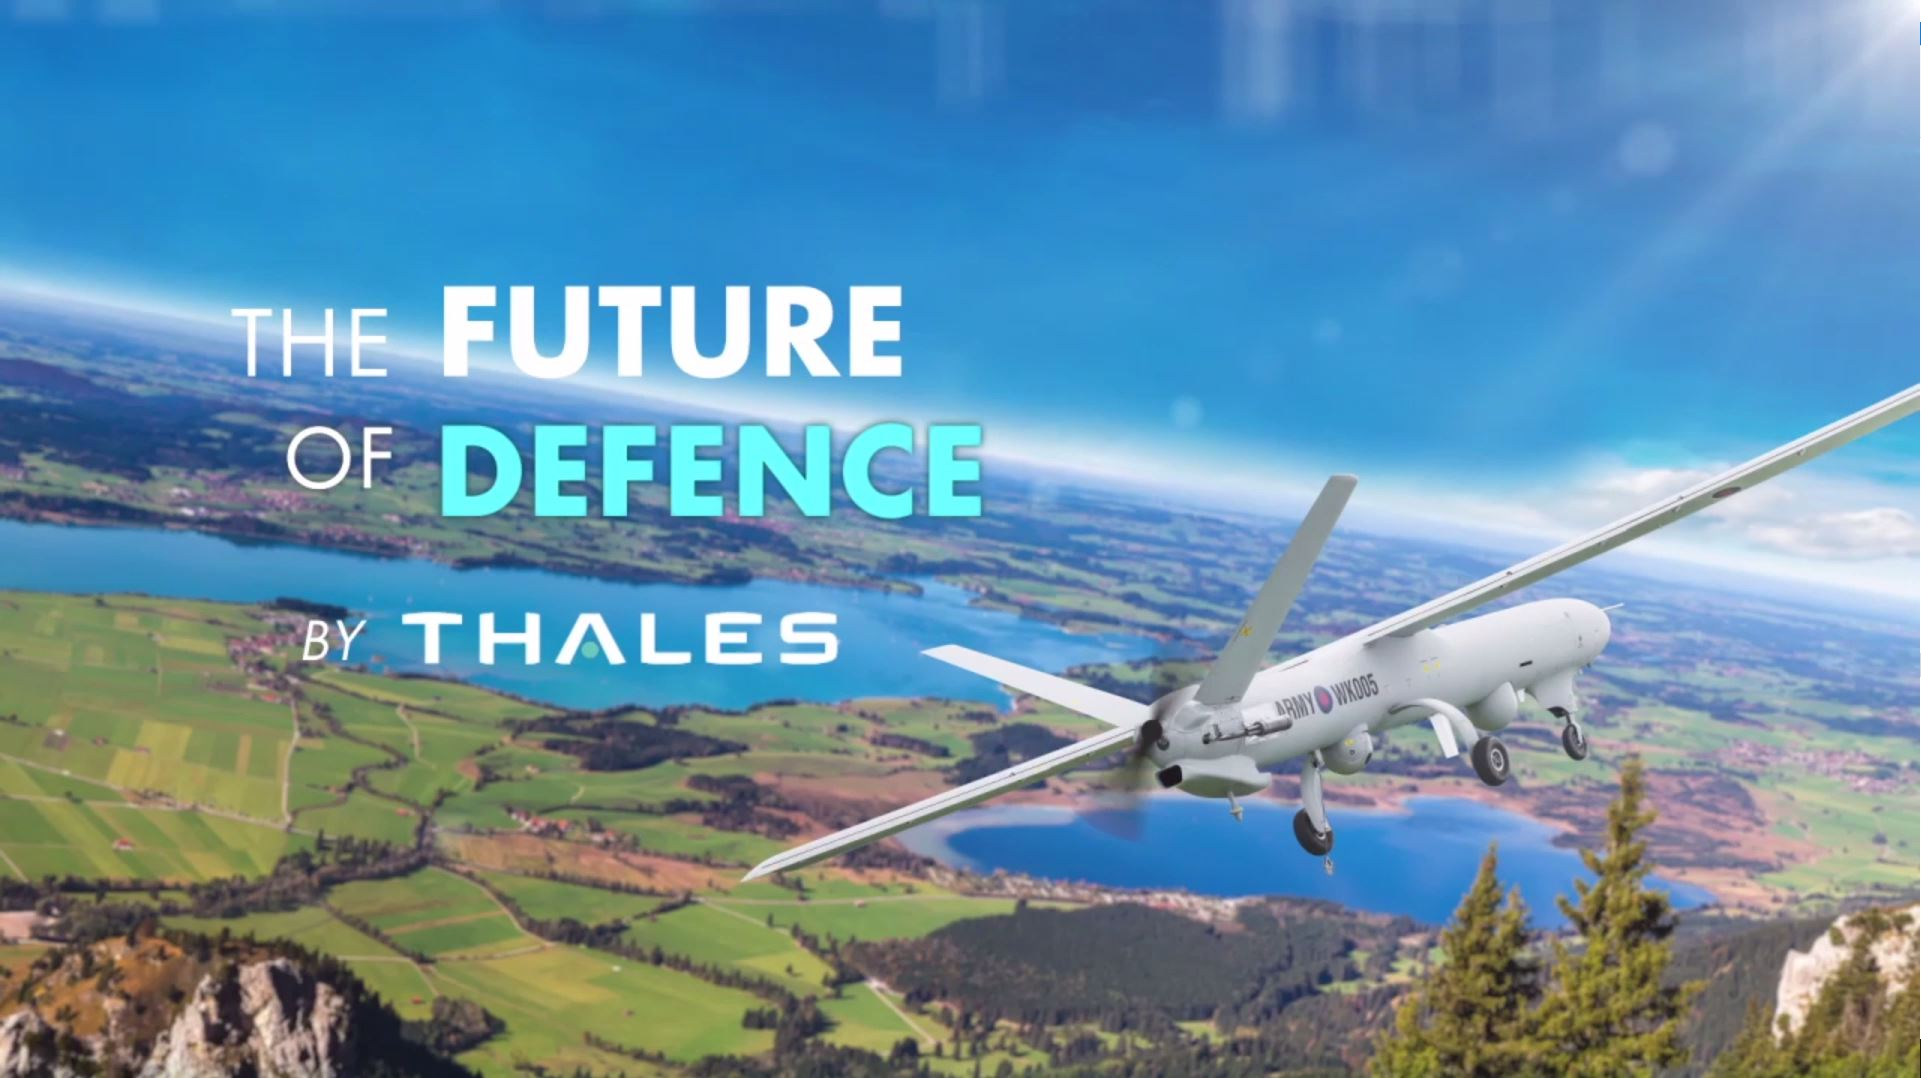 The Future of Defence